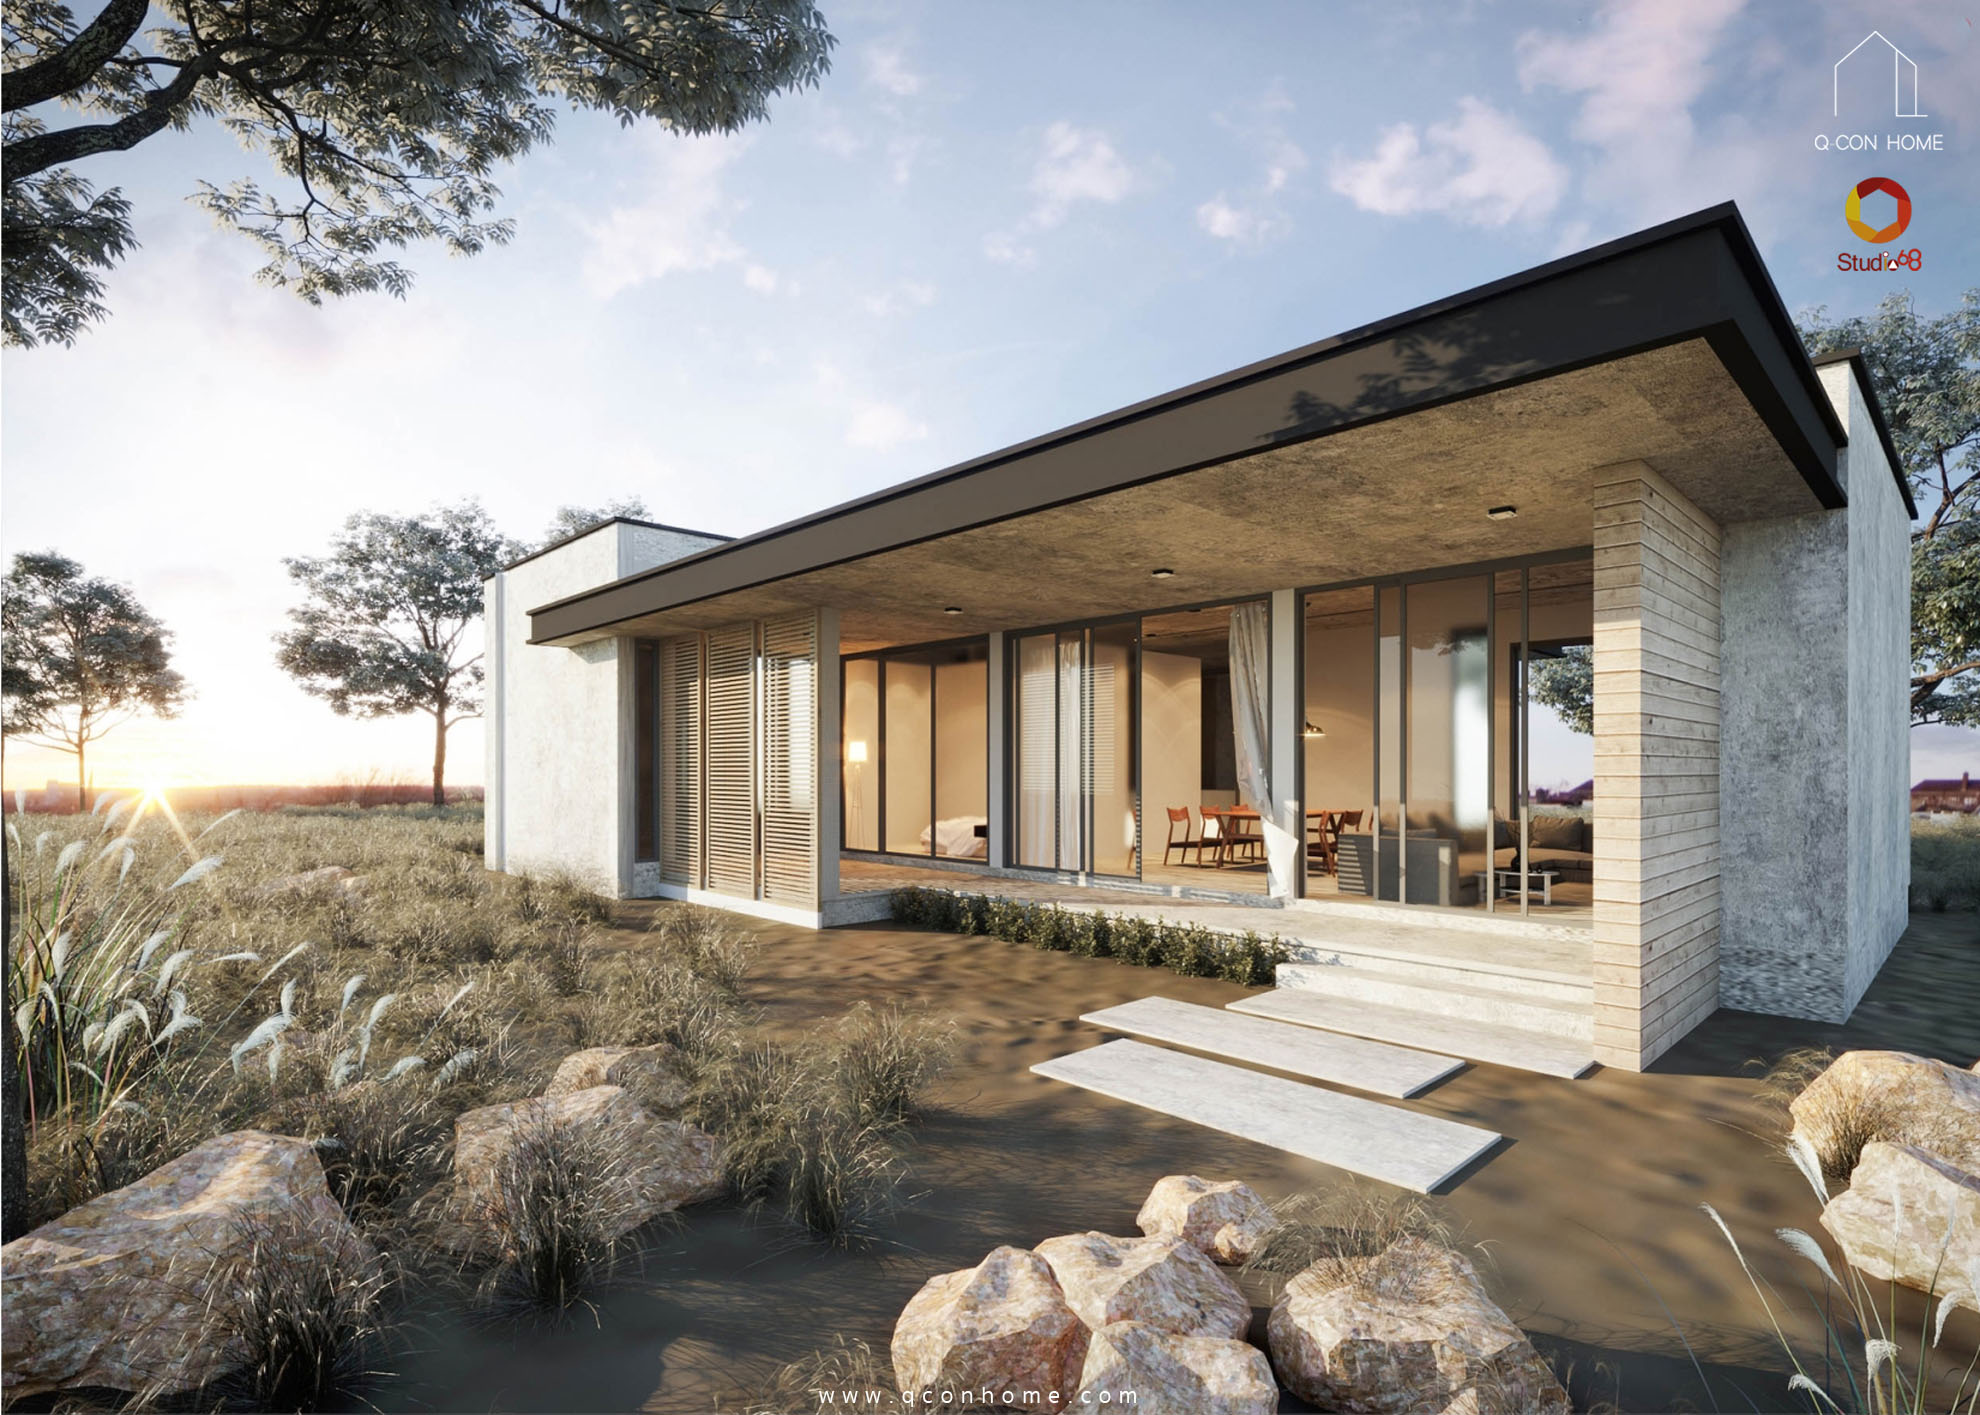 Modern-simplicity-house-2-architecture-qconhome-contractor